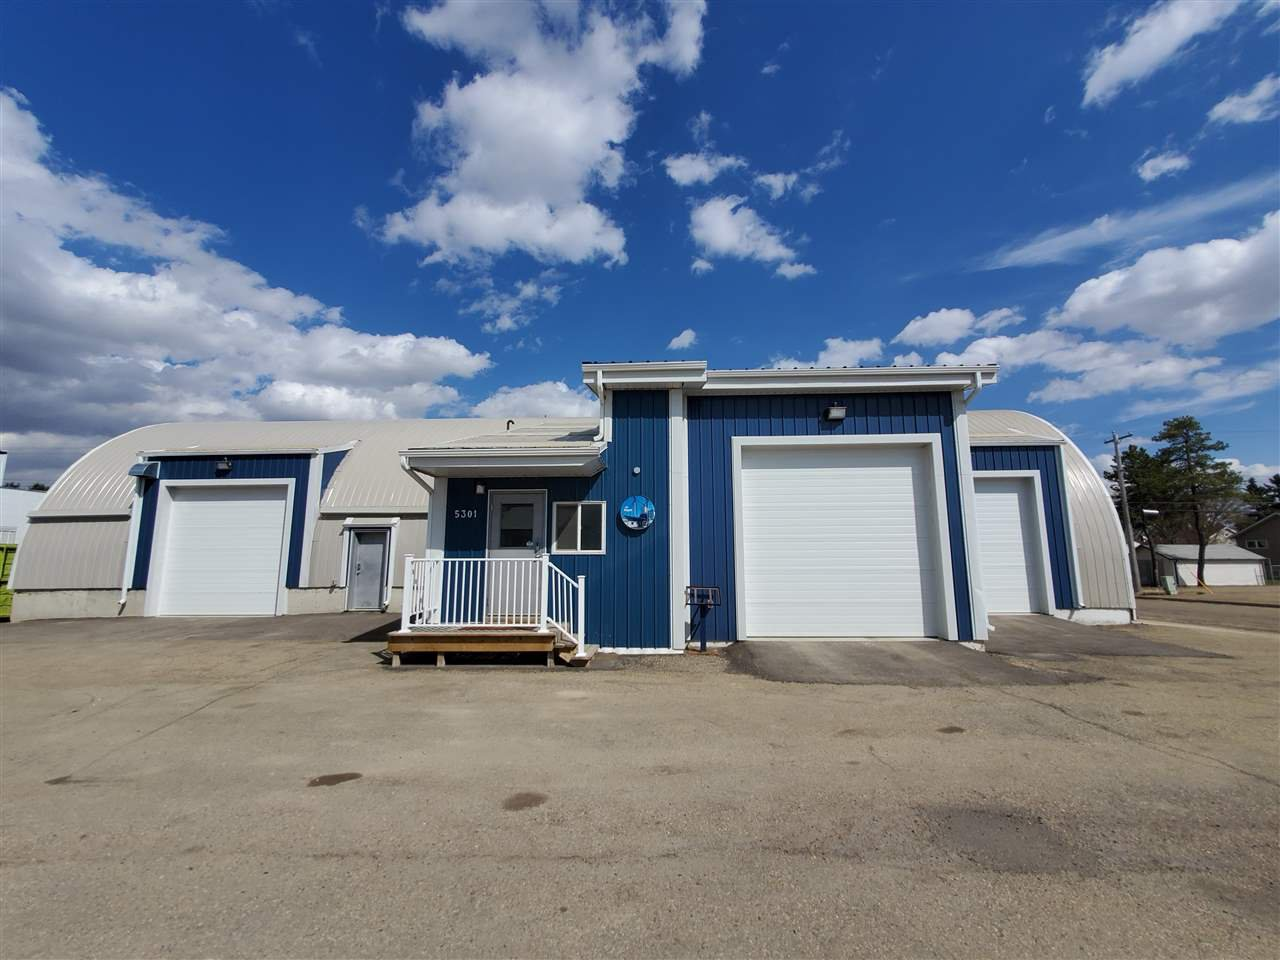 Main Photo: 5301 49 Street: Wetaskiwin Industrial for sale : MLS®# E4184030